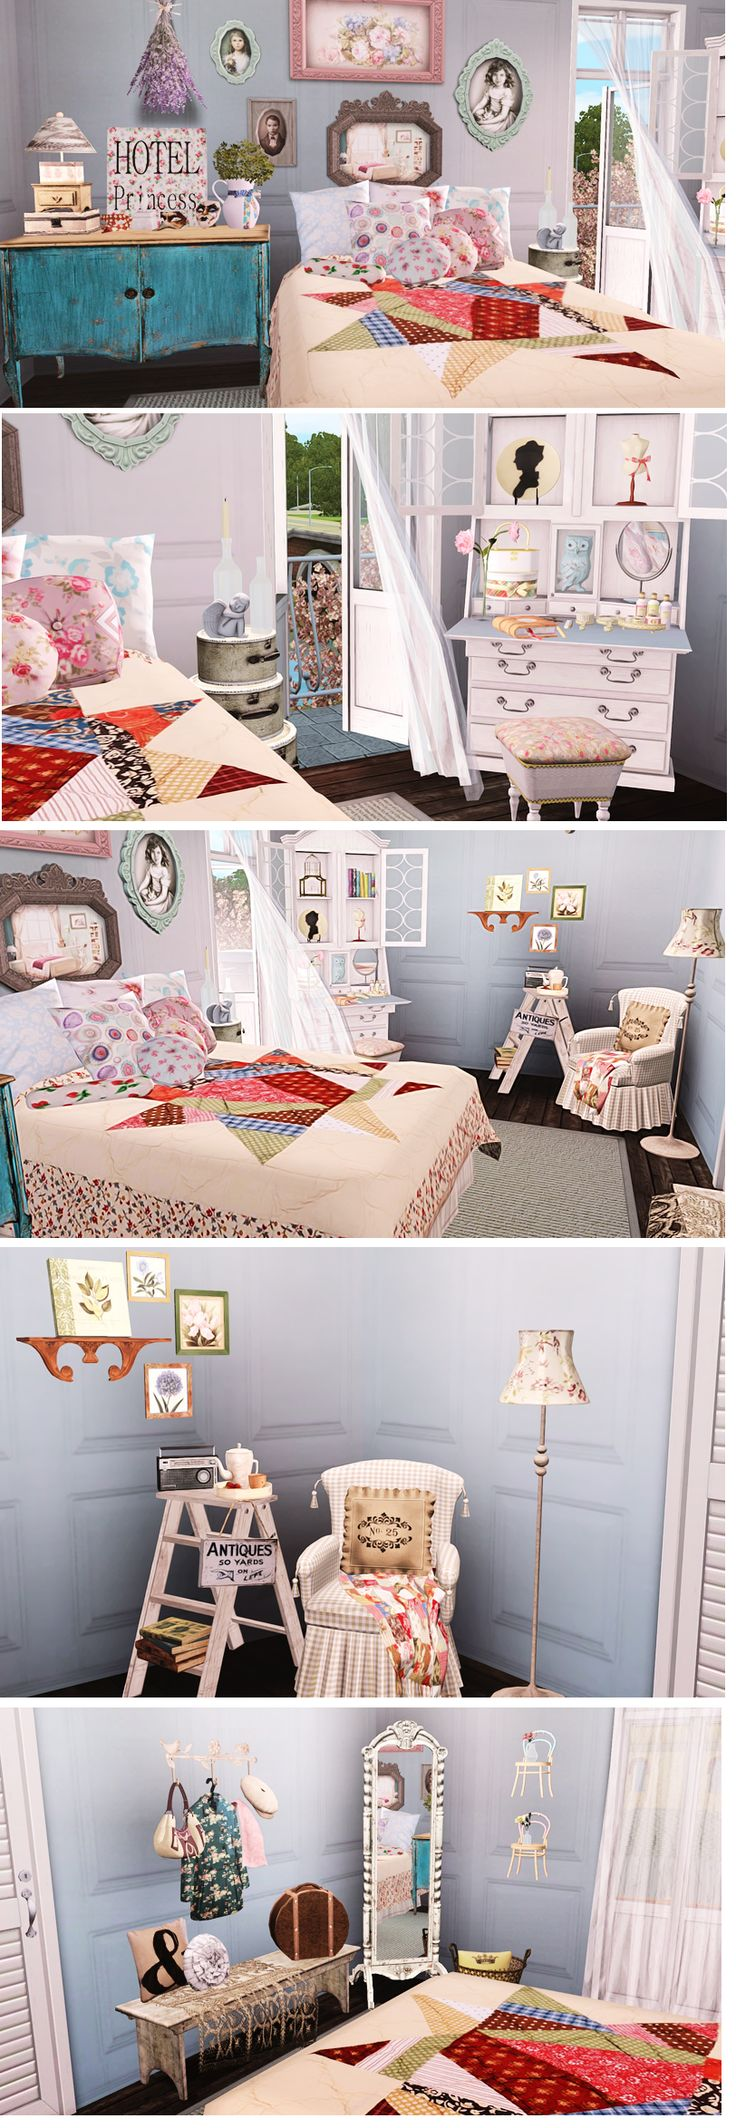 Sims 3 Bedroom Decor 17 Best Images About Sims 3 Stuff On Pinterest Jo Omeara